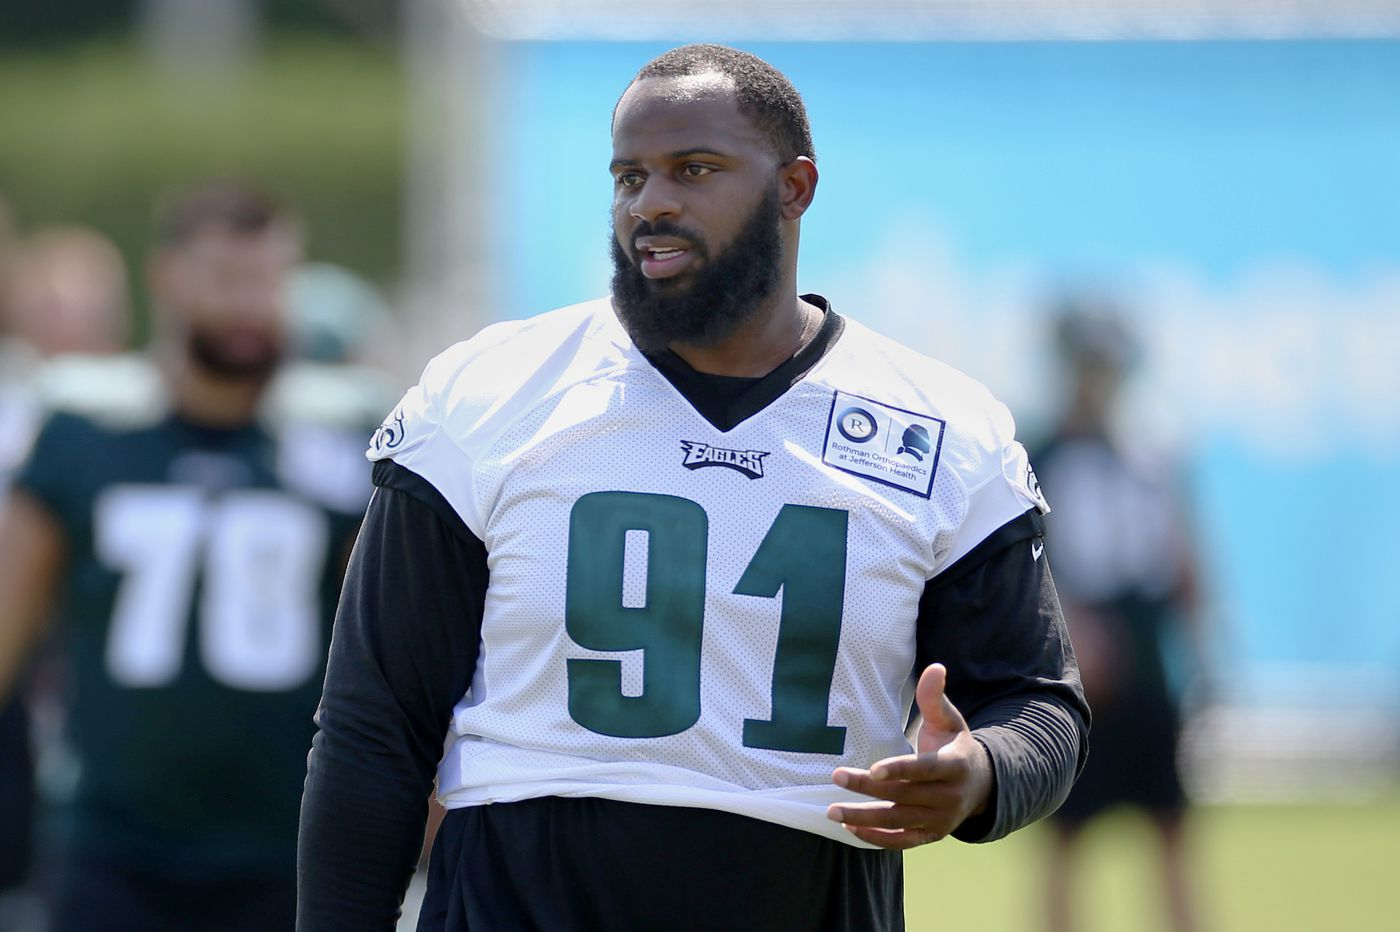 Eagles' Fletcher Cox on 911 call during alleged burglary attempt: 'I'm about to blow his brains out right now.'